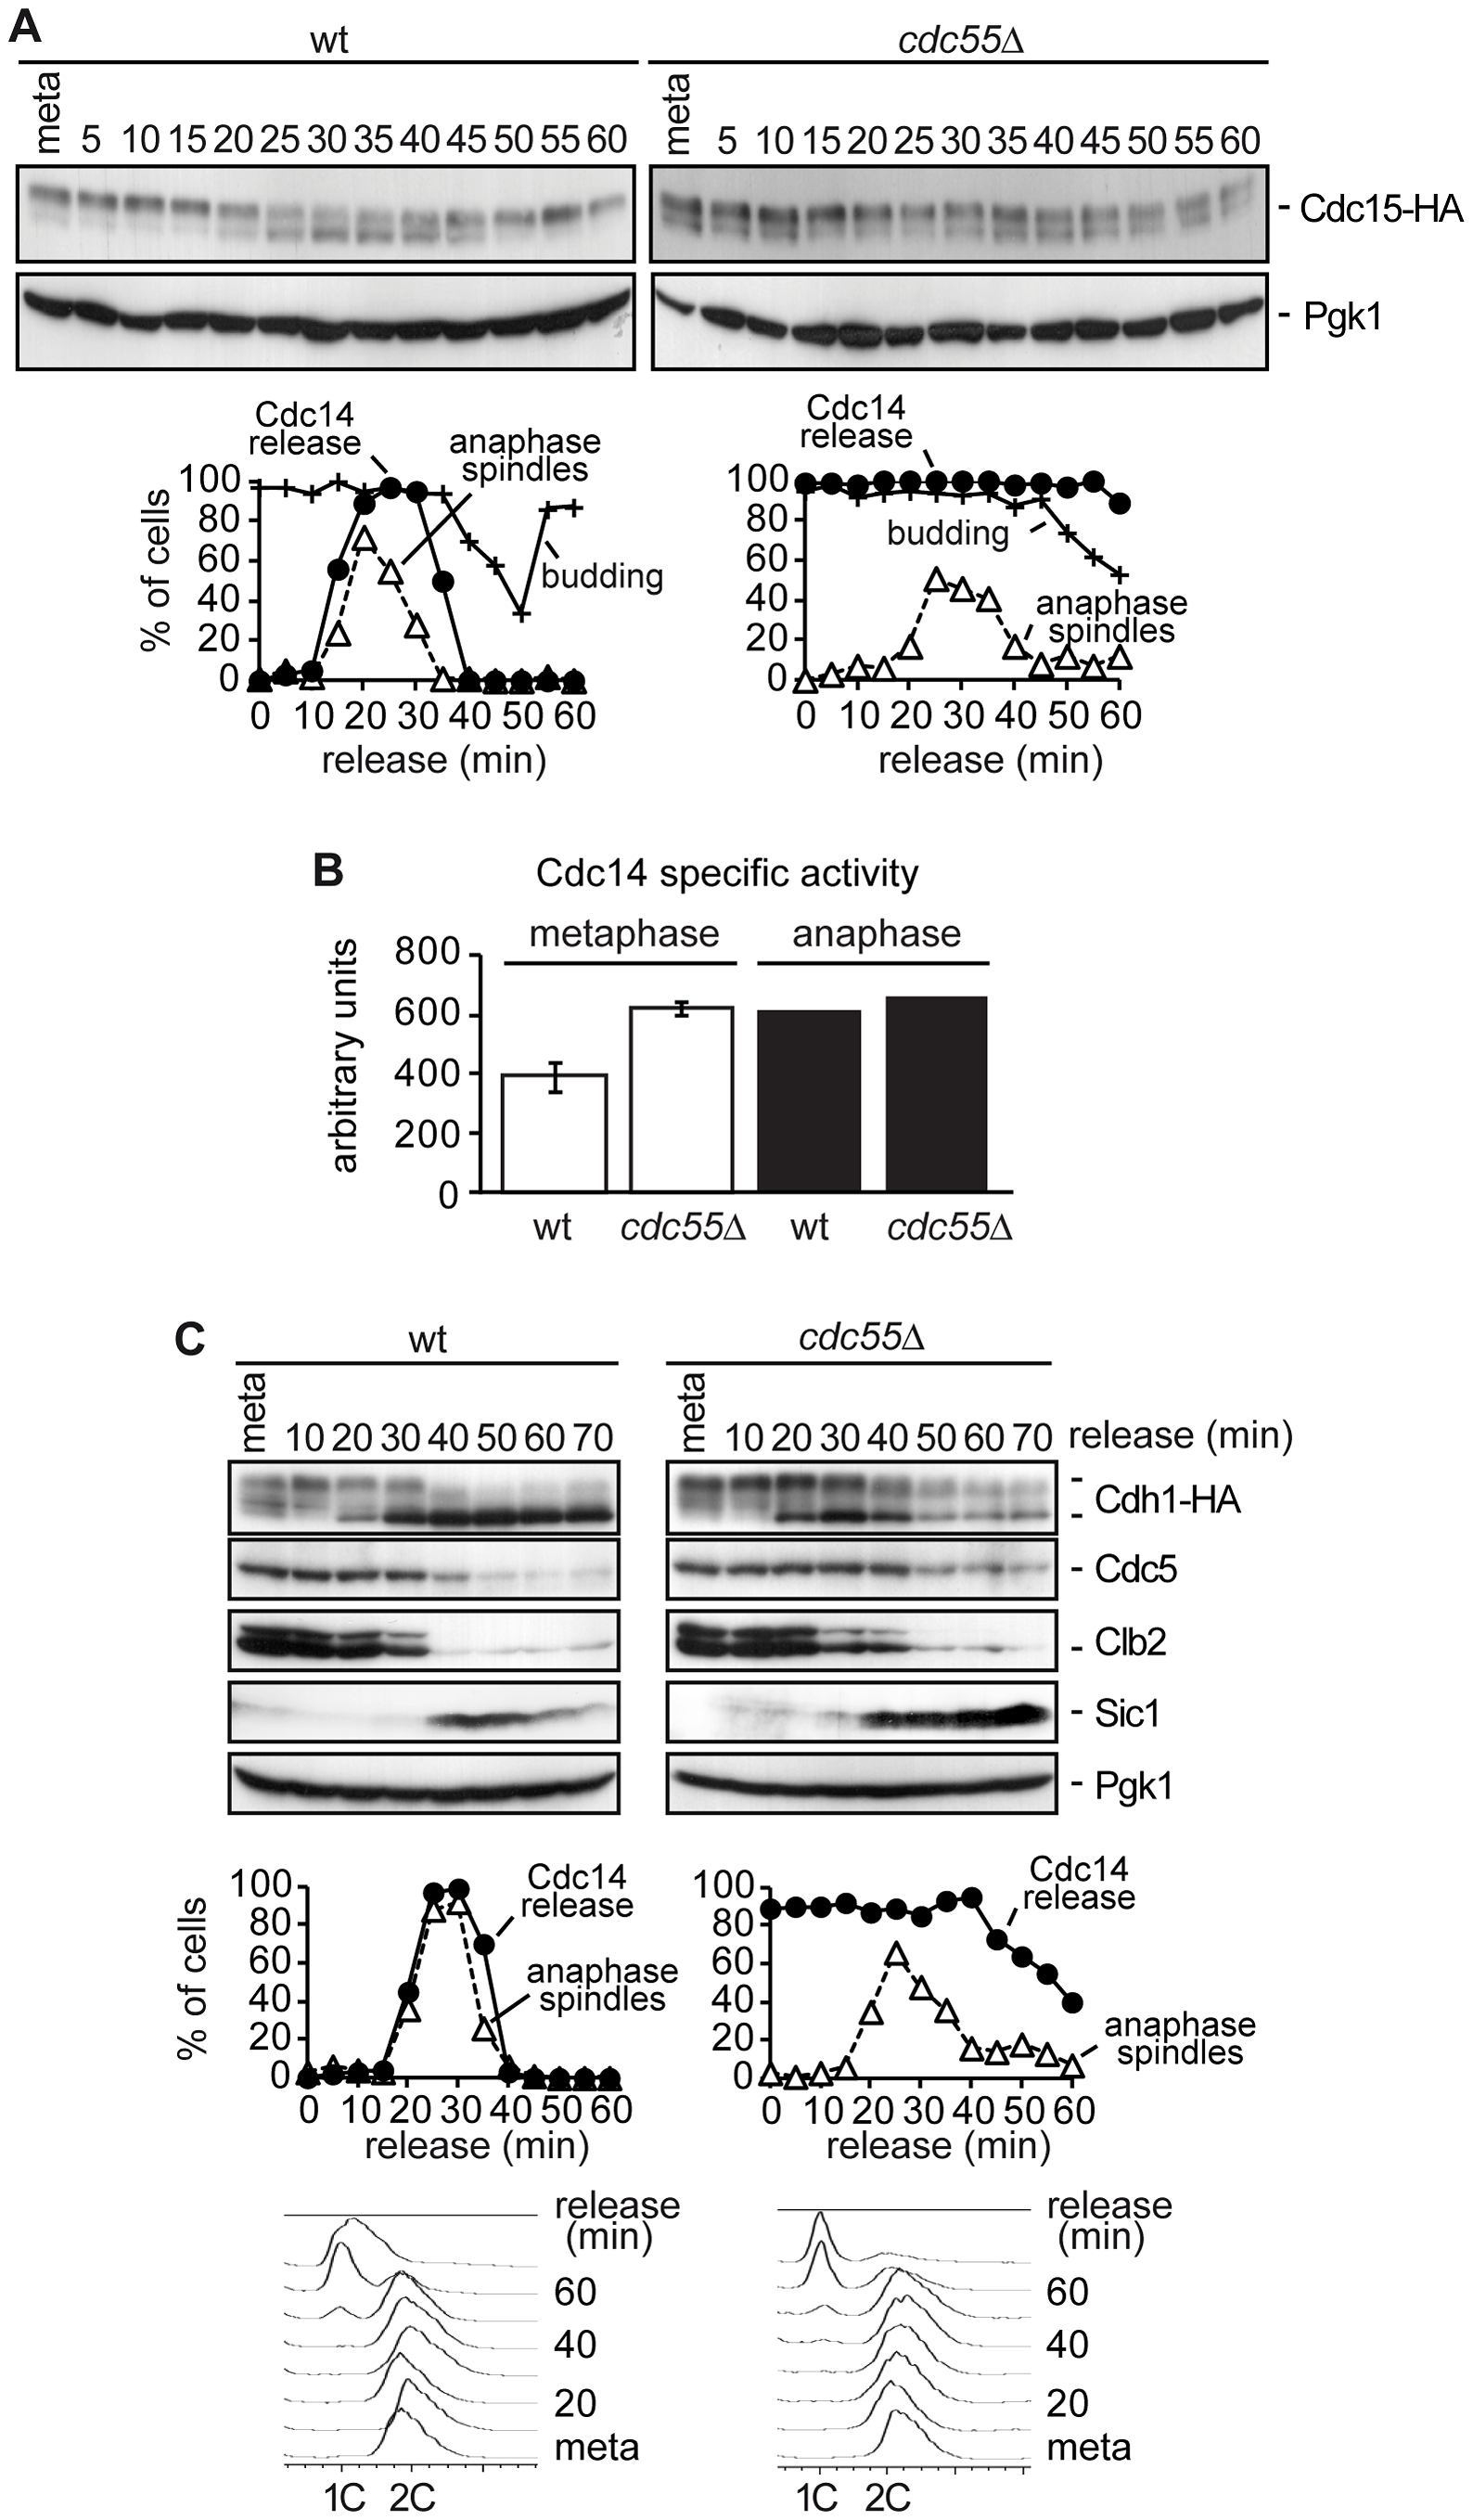 Premature Bfa1 inactivation does not provoke premature exit from mitosis.